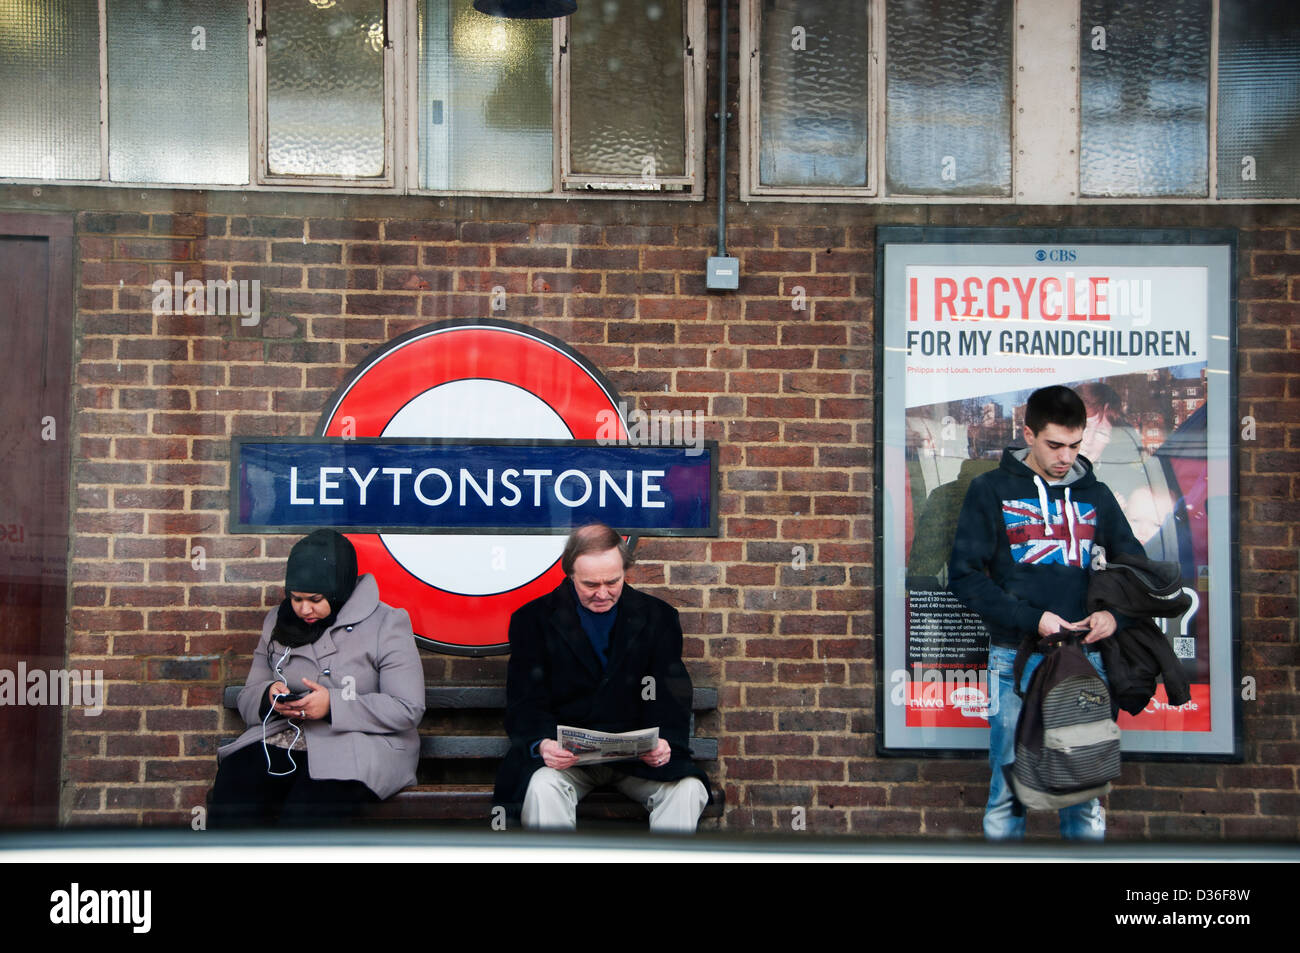 Passengers waiting at Leytonstone underground station, seen from a passing tube - Stock Image